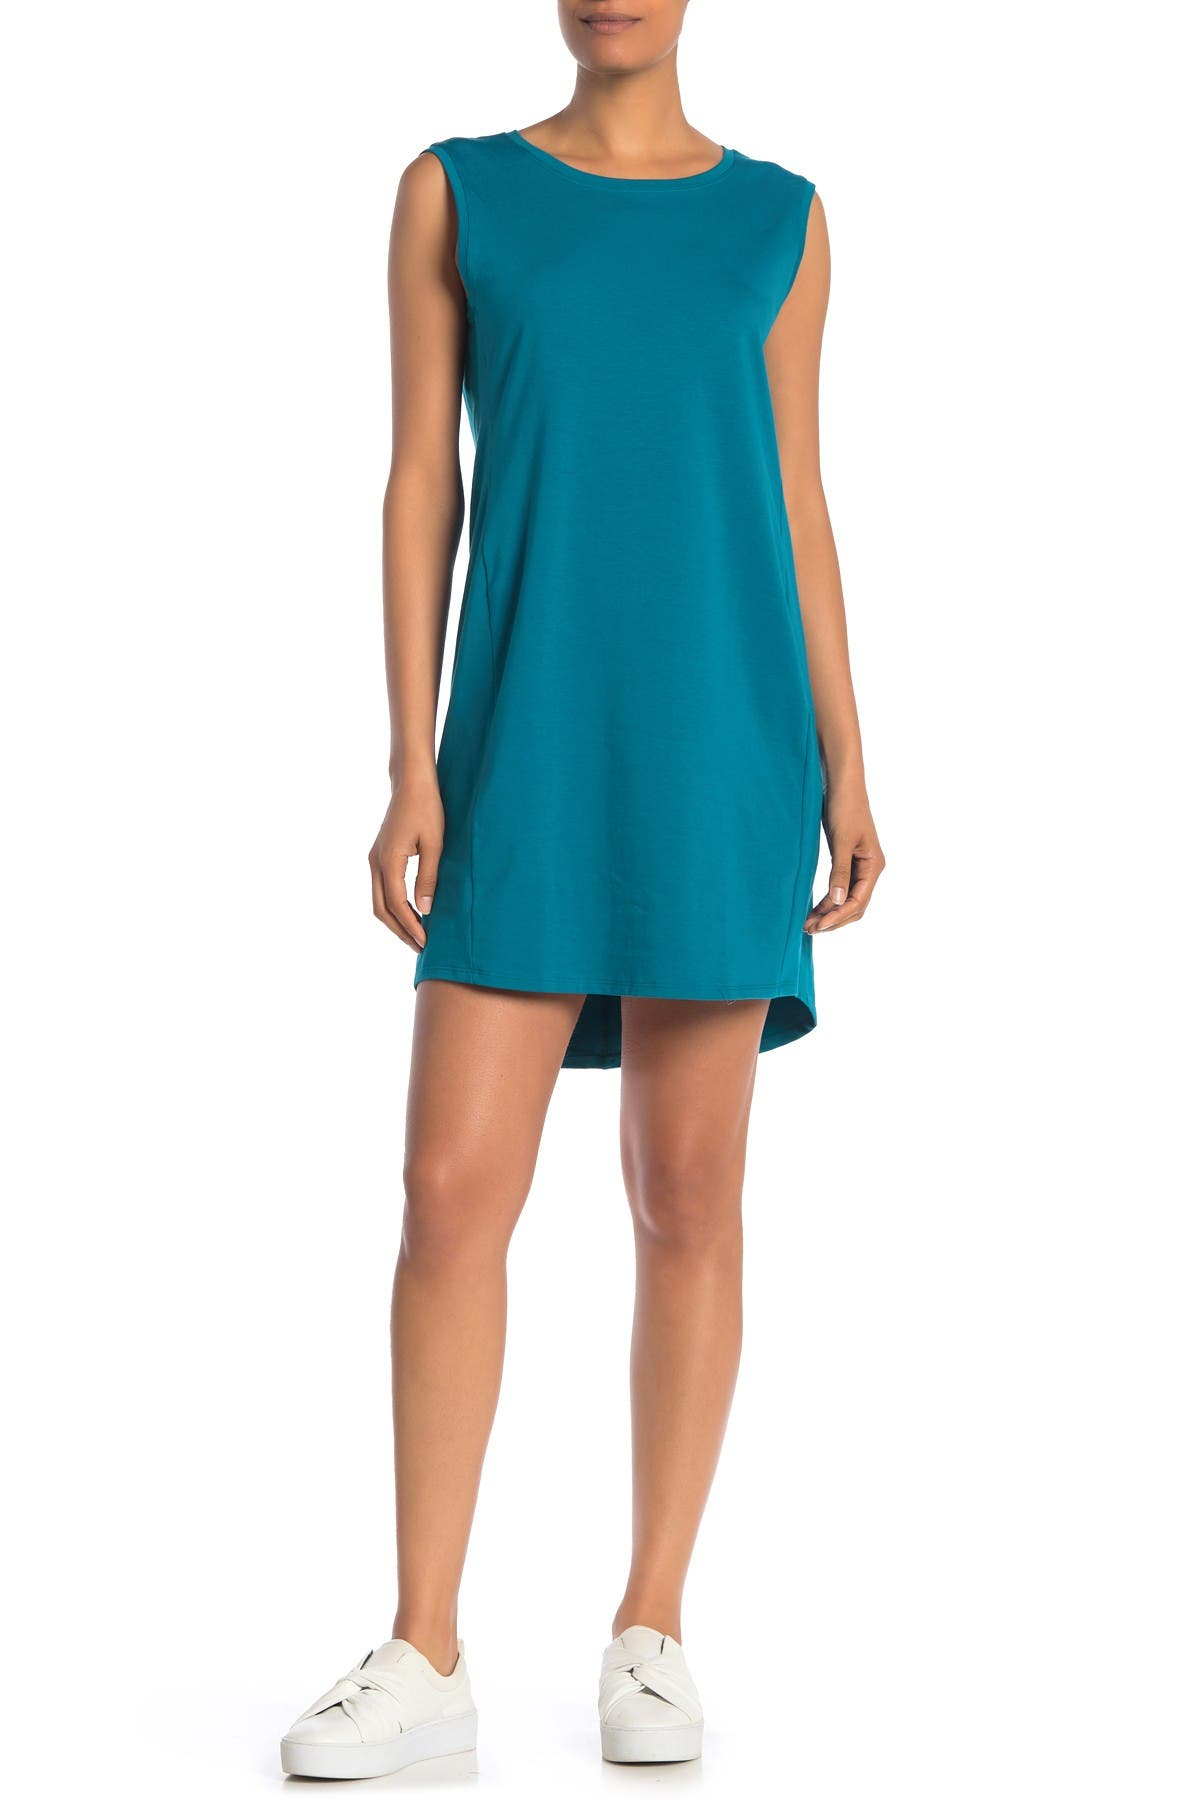 Image of Eileen Fisher Scoop Neck Sleeveless Dress